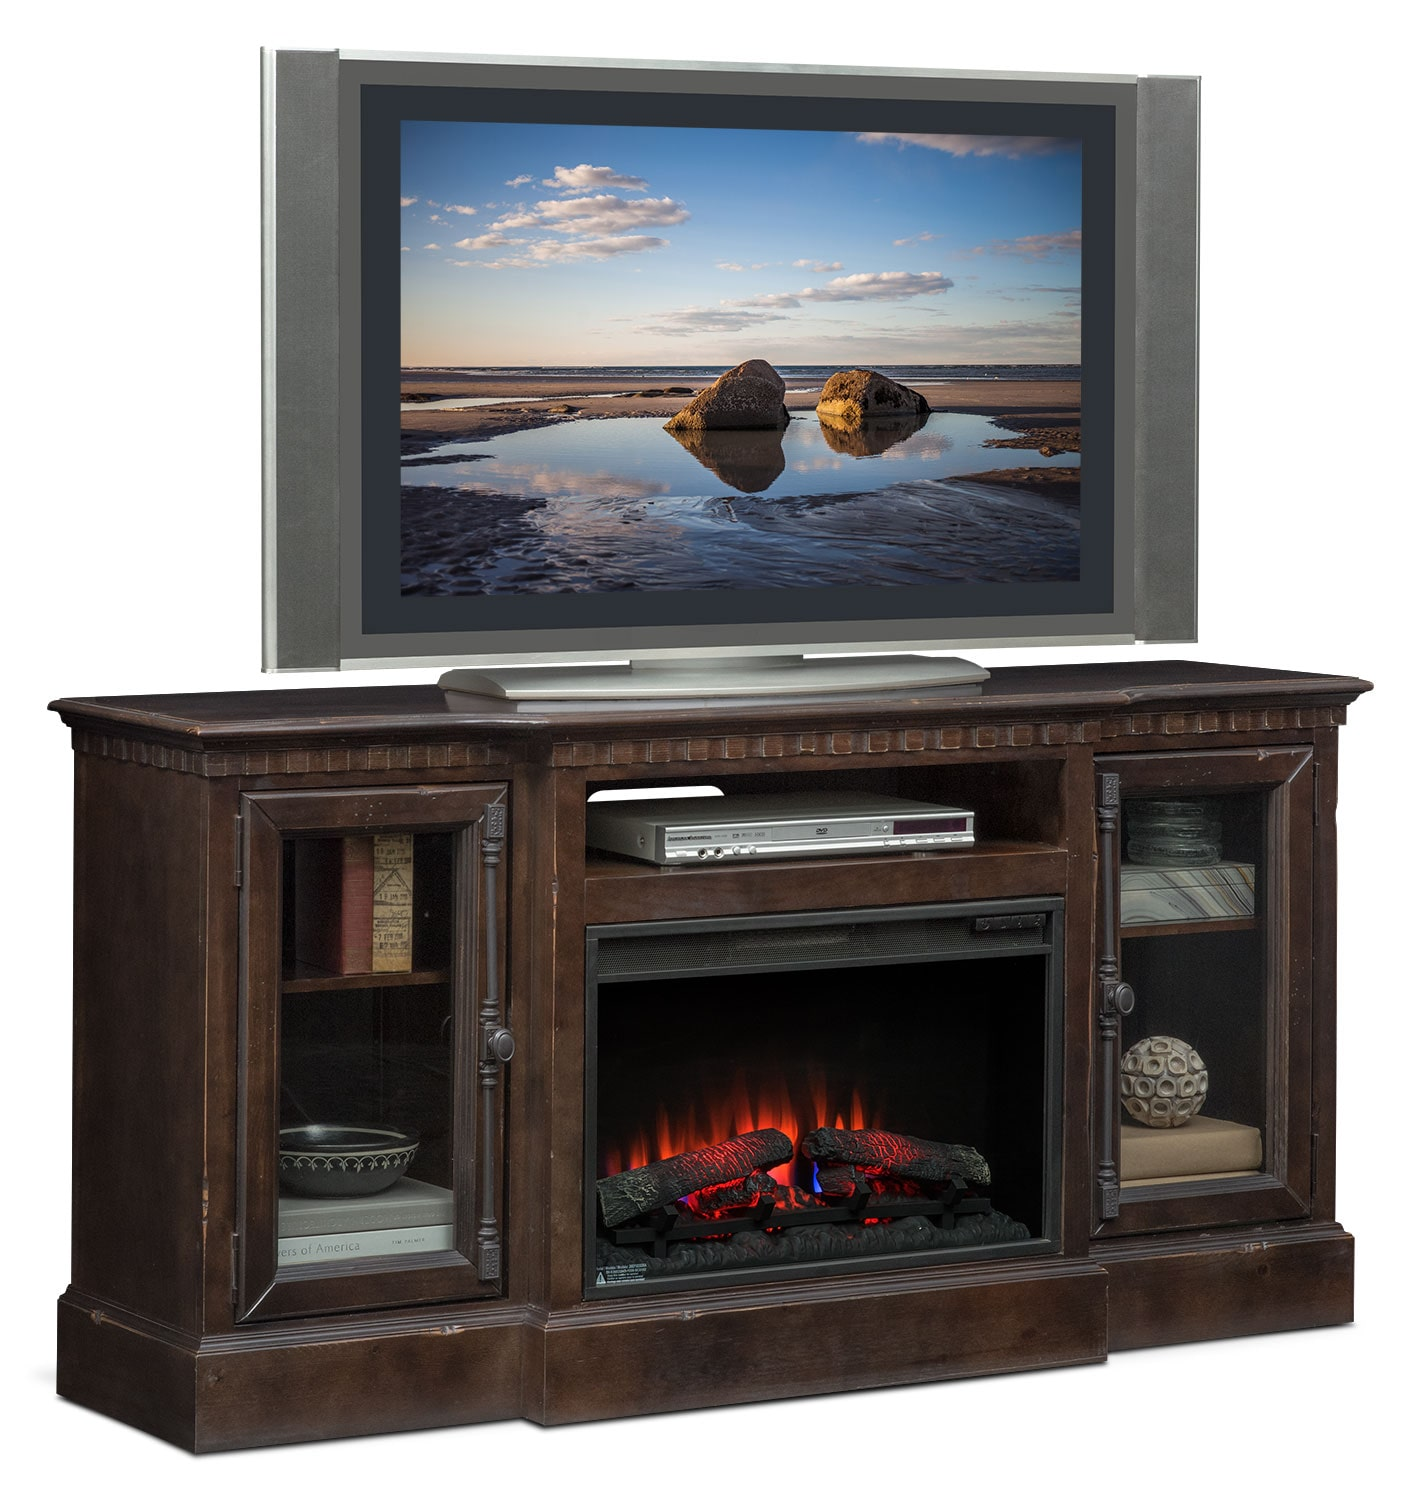 "Claridge 64"" Traditional Fireplace Media Stand - Tobacco"